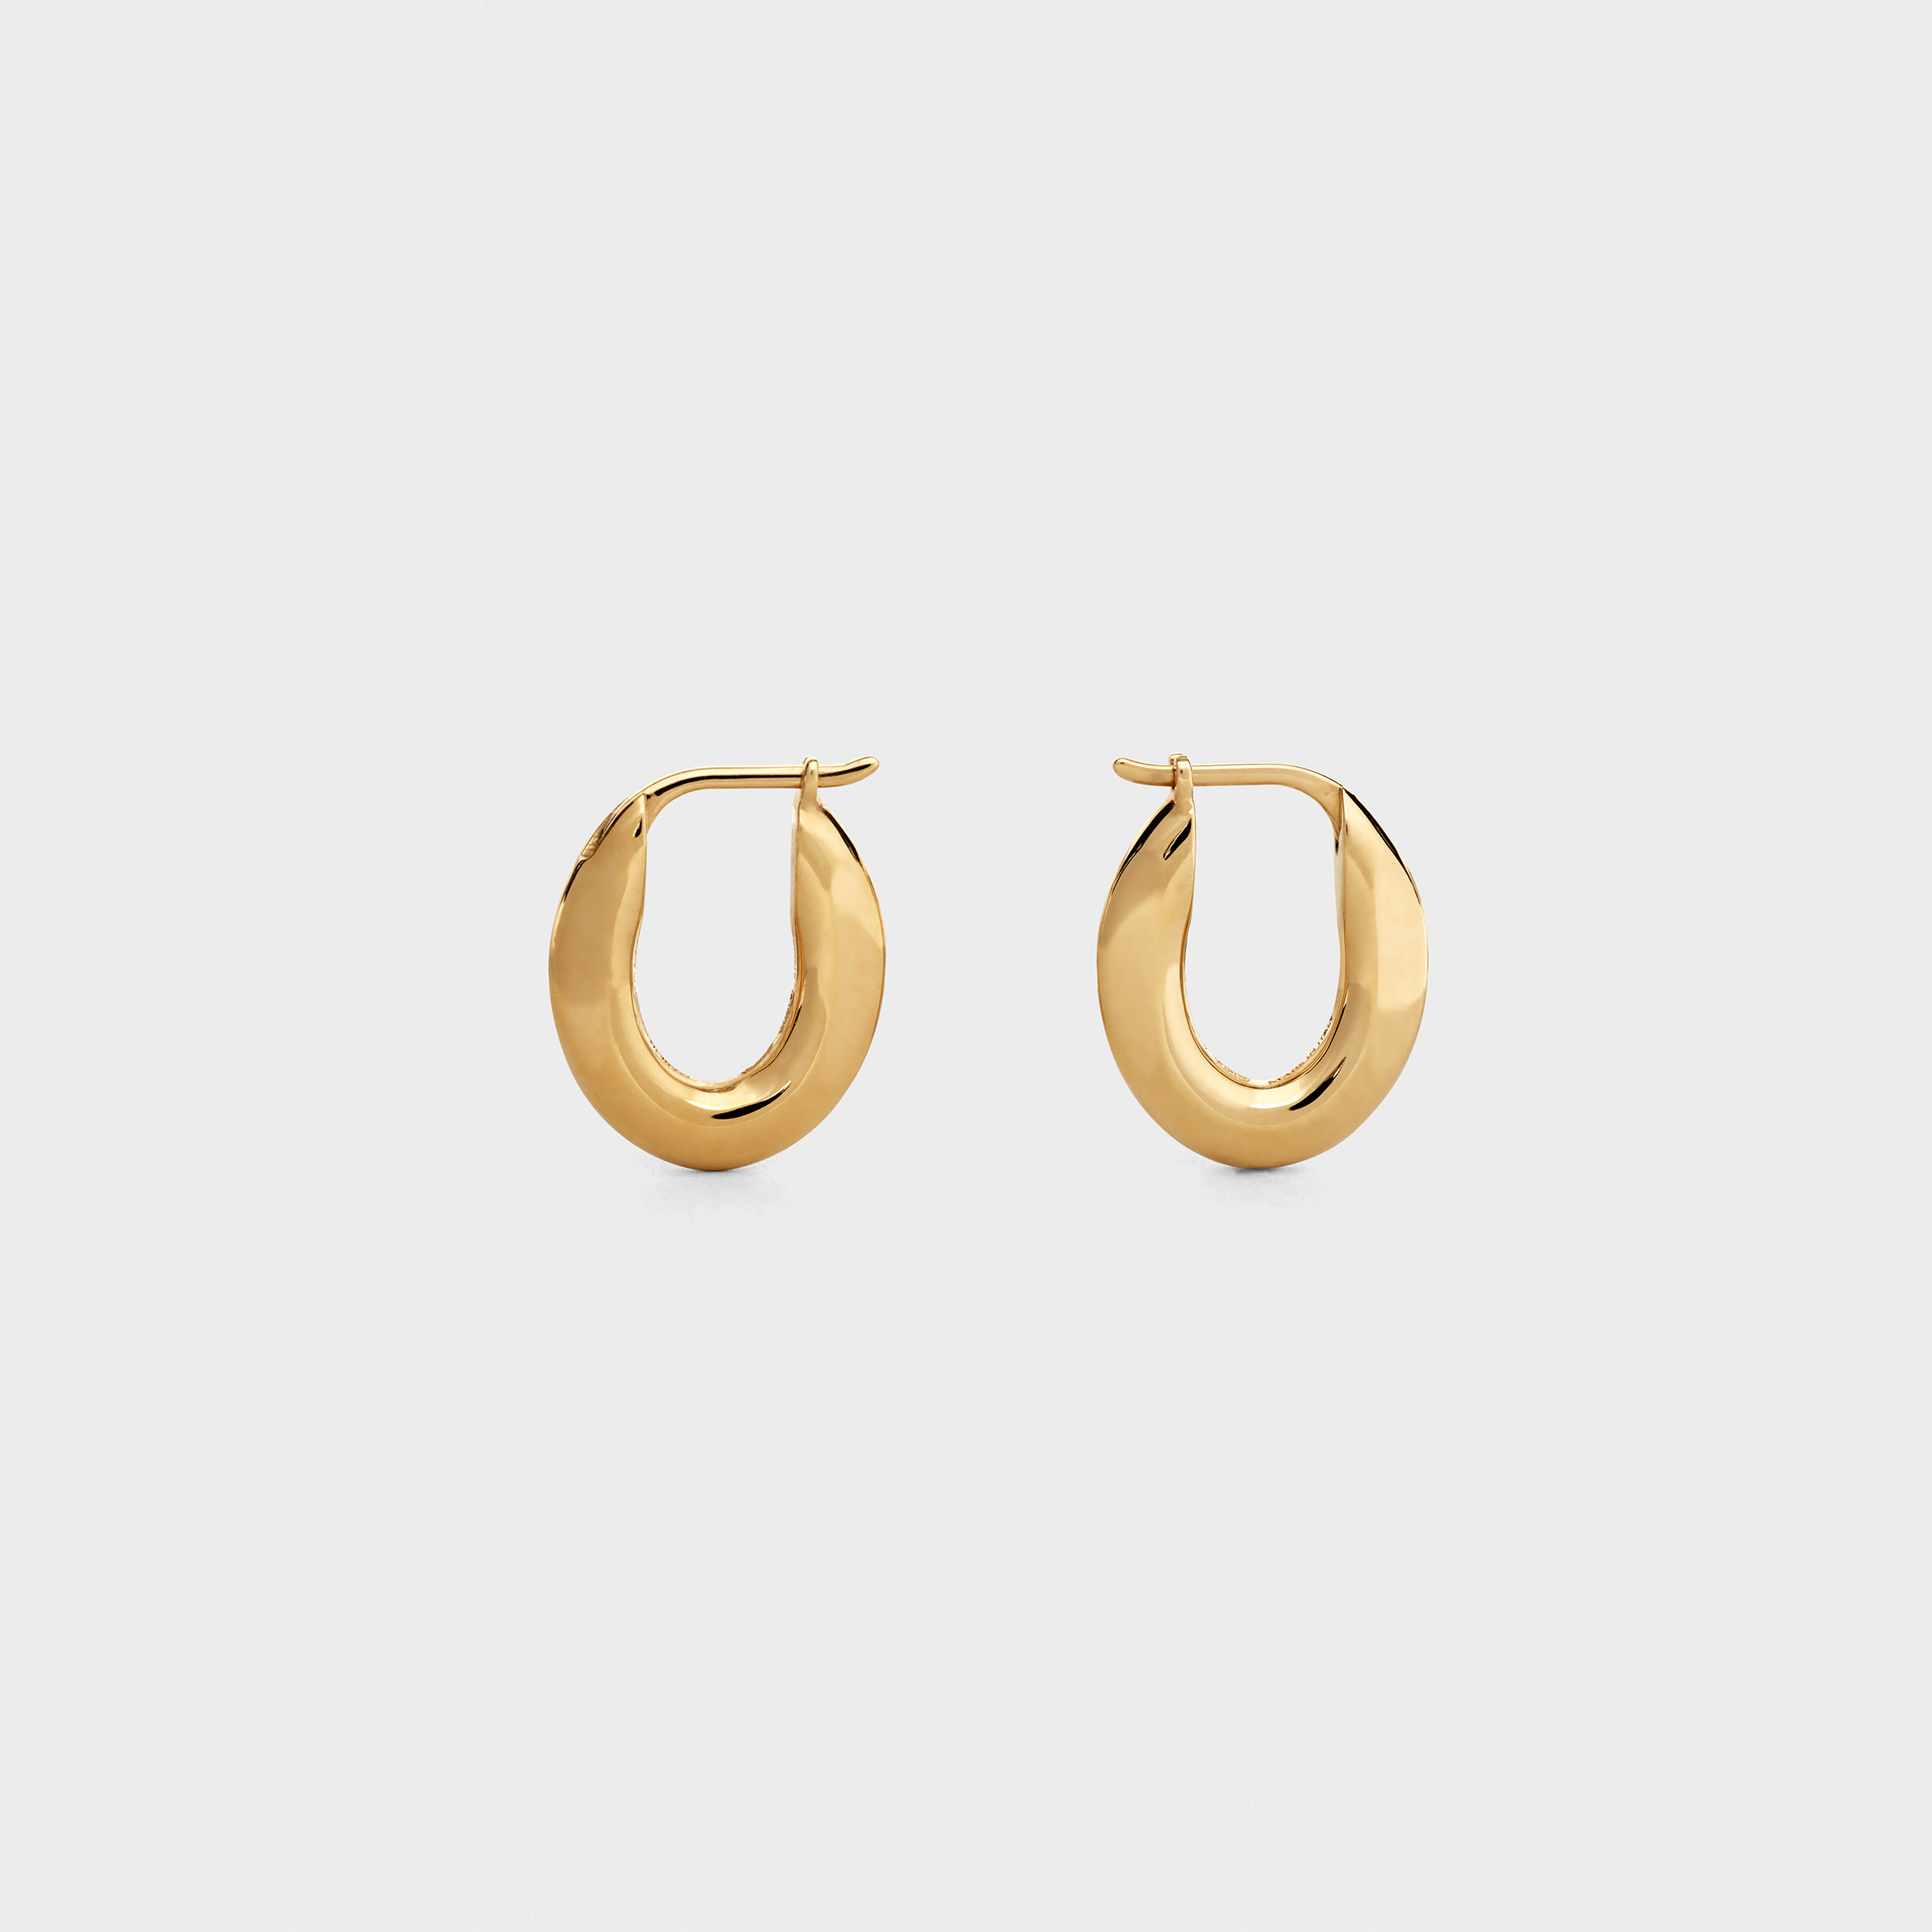 Chaîne Triomphe Small Earrings in Vermeil | CELINE